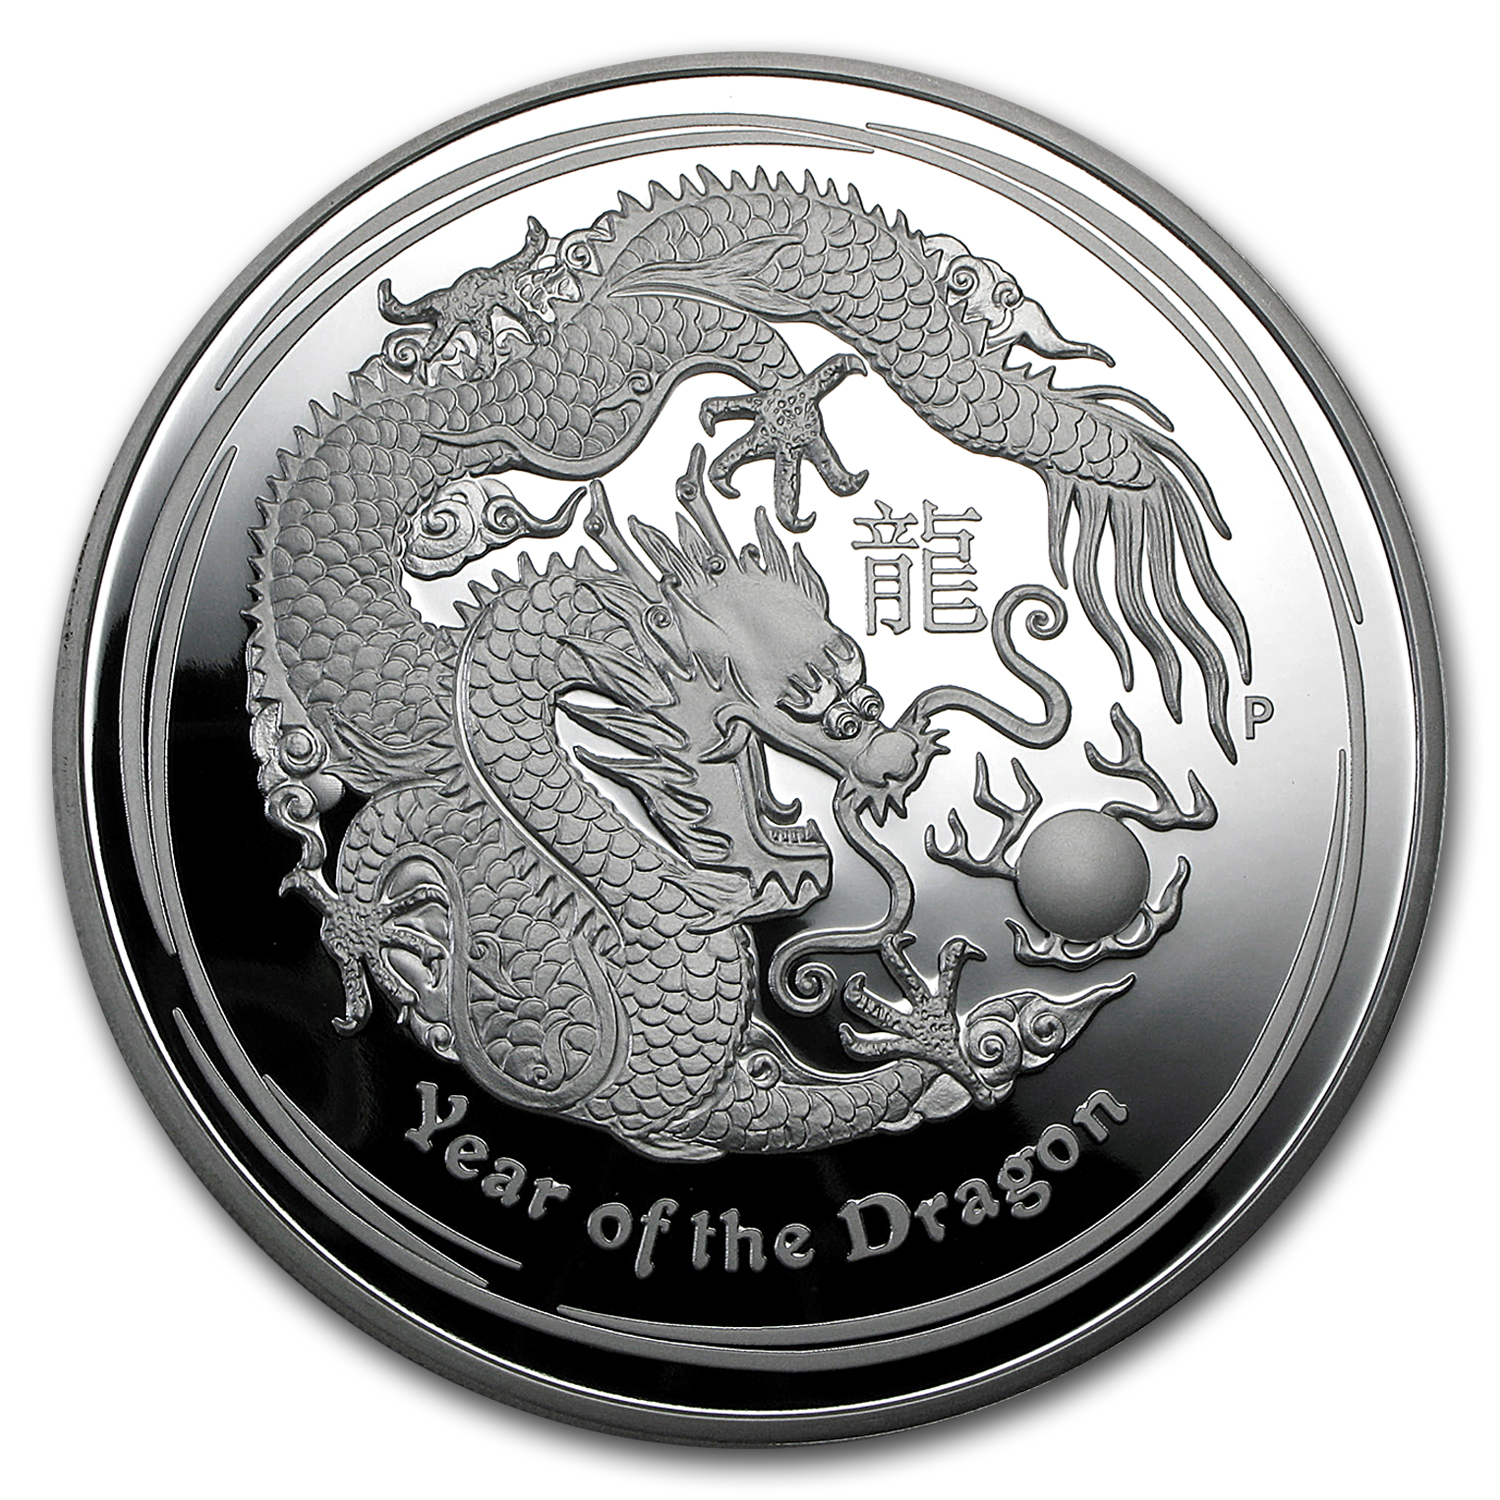 2012 Australia 1 kilo Silver Year of the Dragon Proof